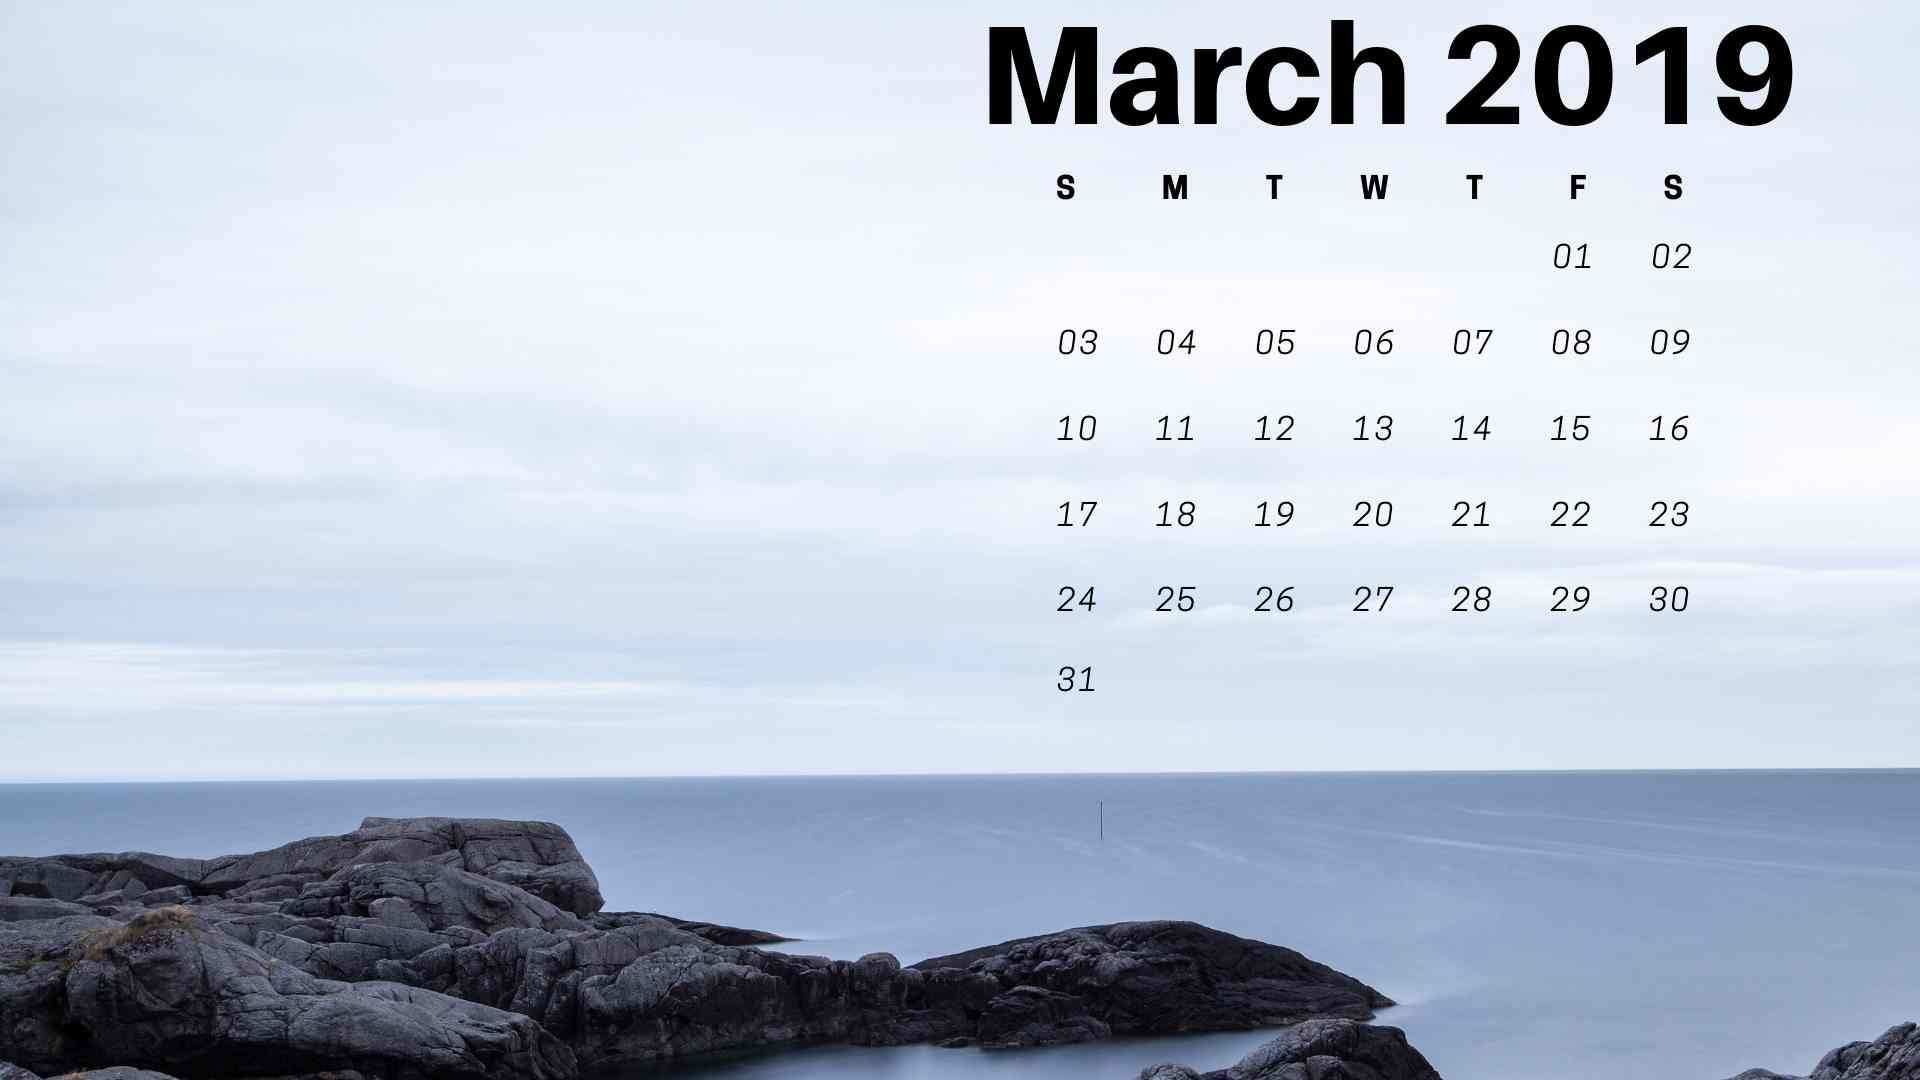 March 2019 Calendar Wallpaper Desktop march calendar calenda2019